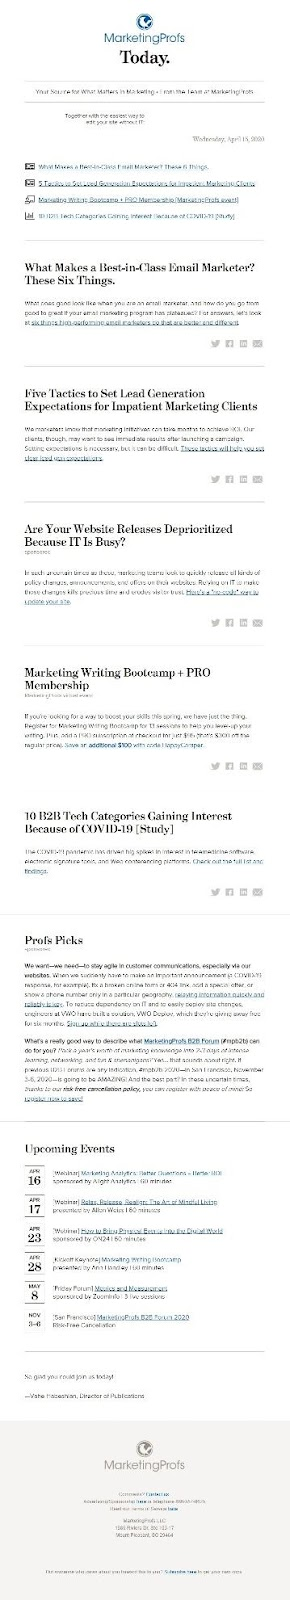 MarketingProfs newsletter exampe